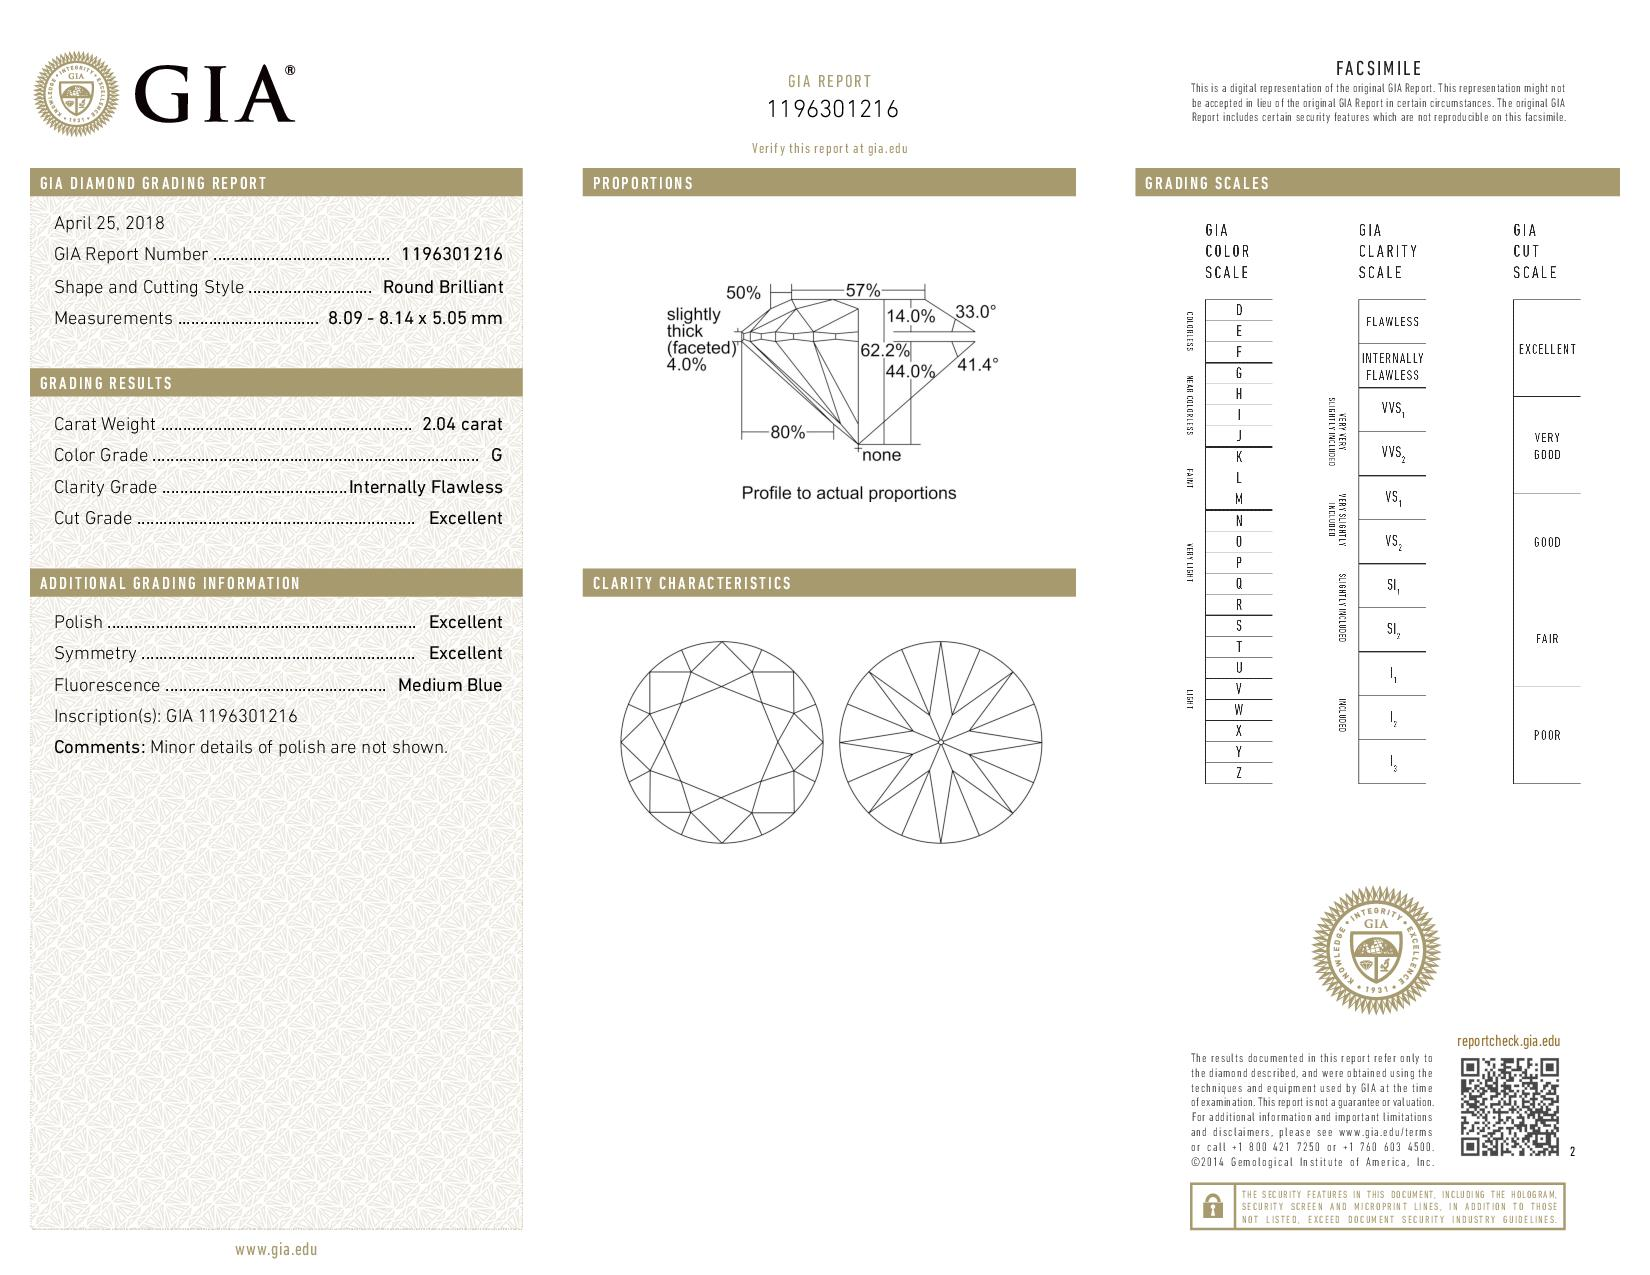 This is a 2.04 carat round shape, G color, IF clarity natural diamond accompanied by a GIA grading report.